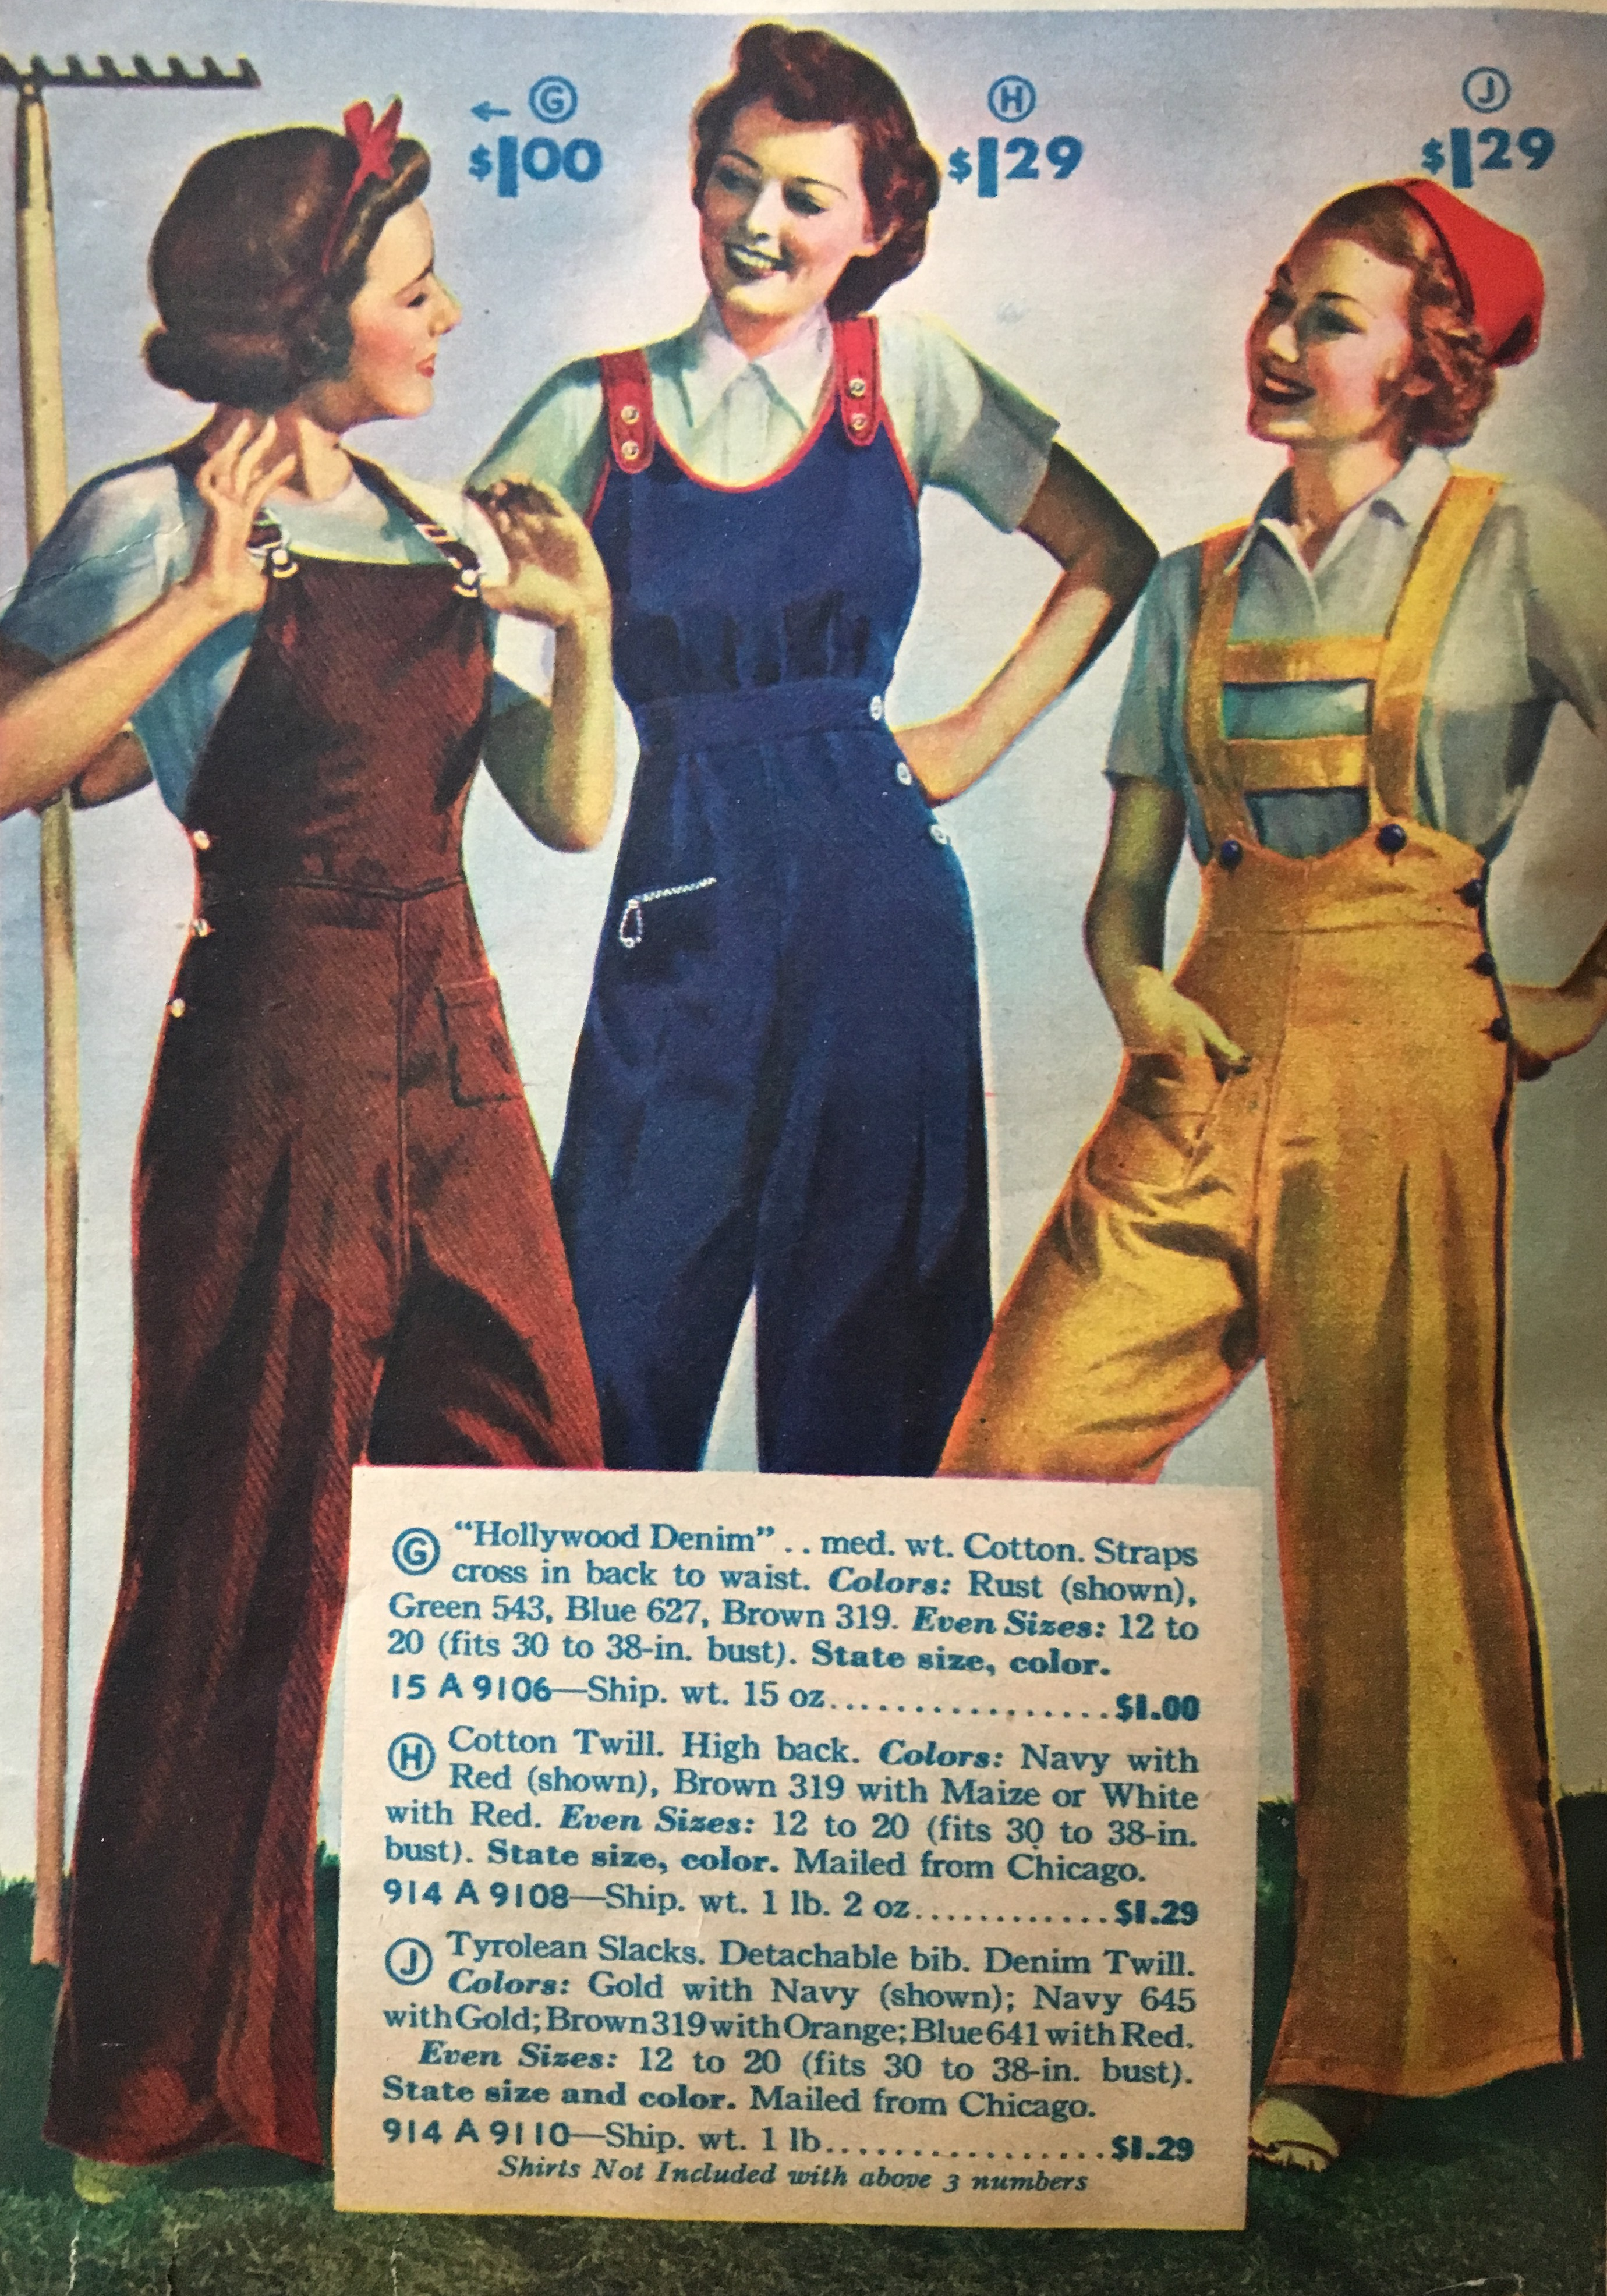 835342c372b1 Vintage Overalls 1910s -1950s History   Shop Overalls